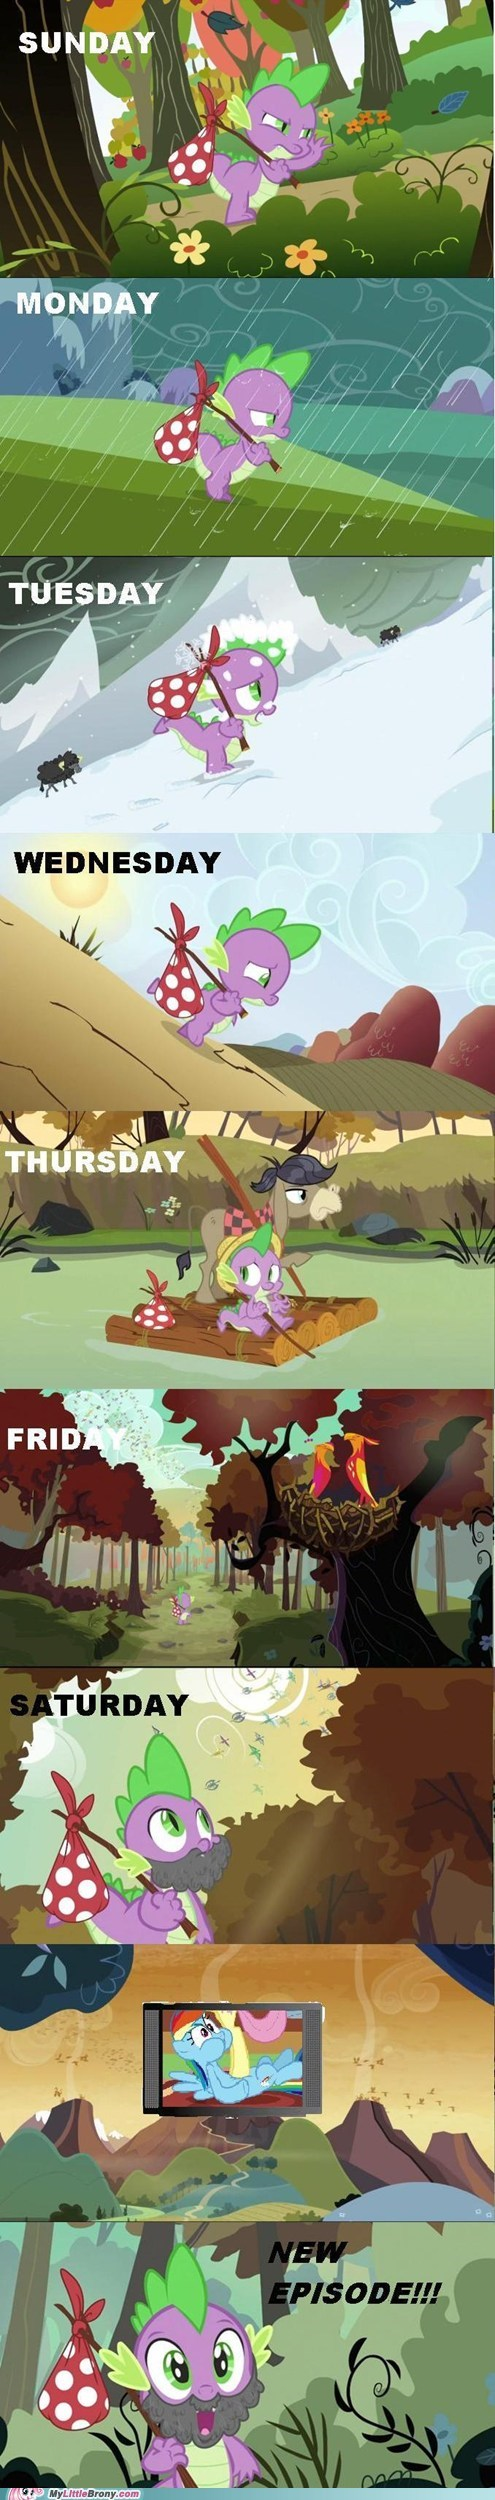 a journey,all week,comic,comics,new episode,spike,waiting